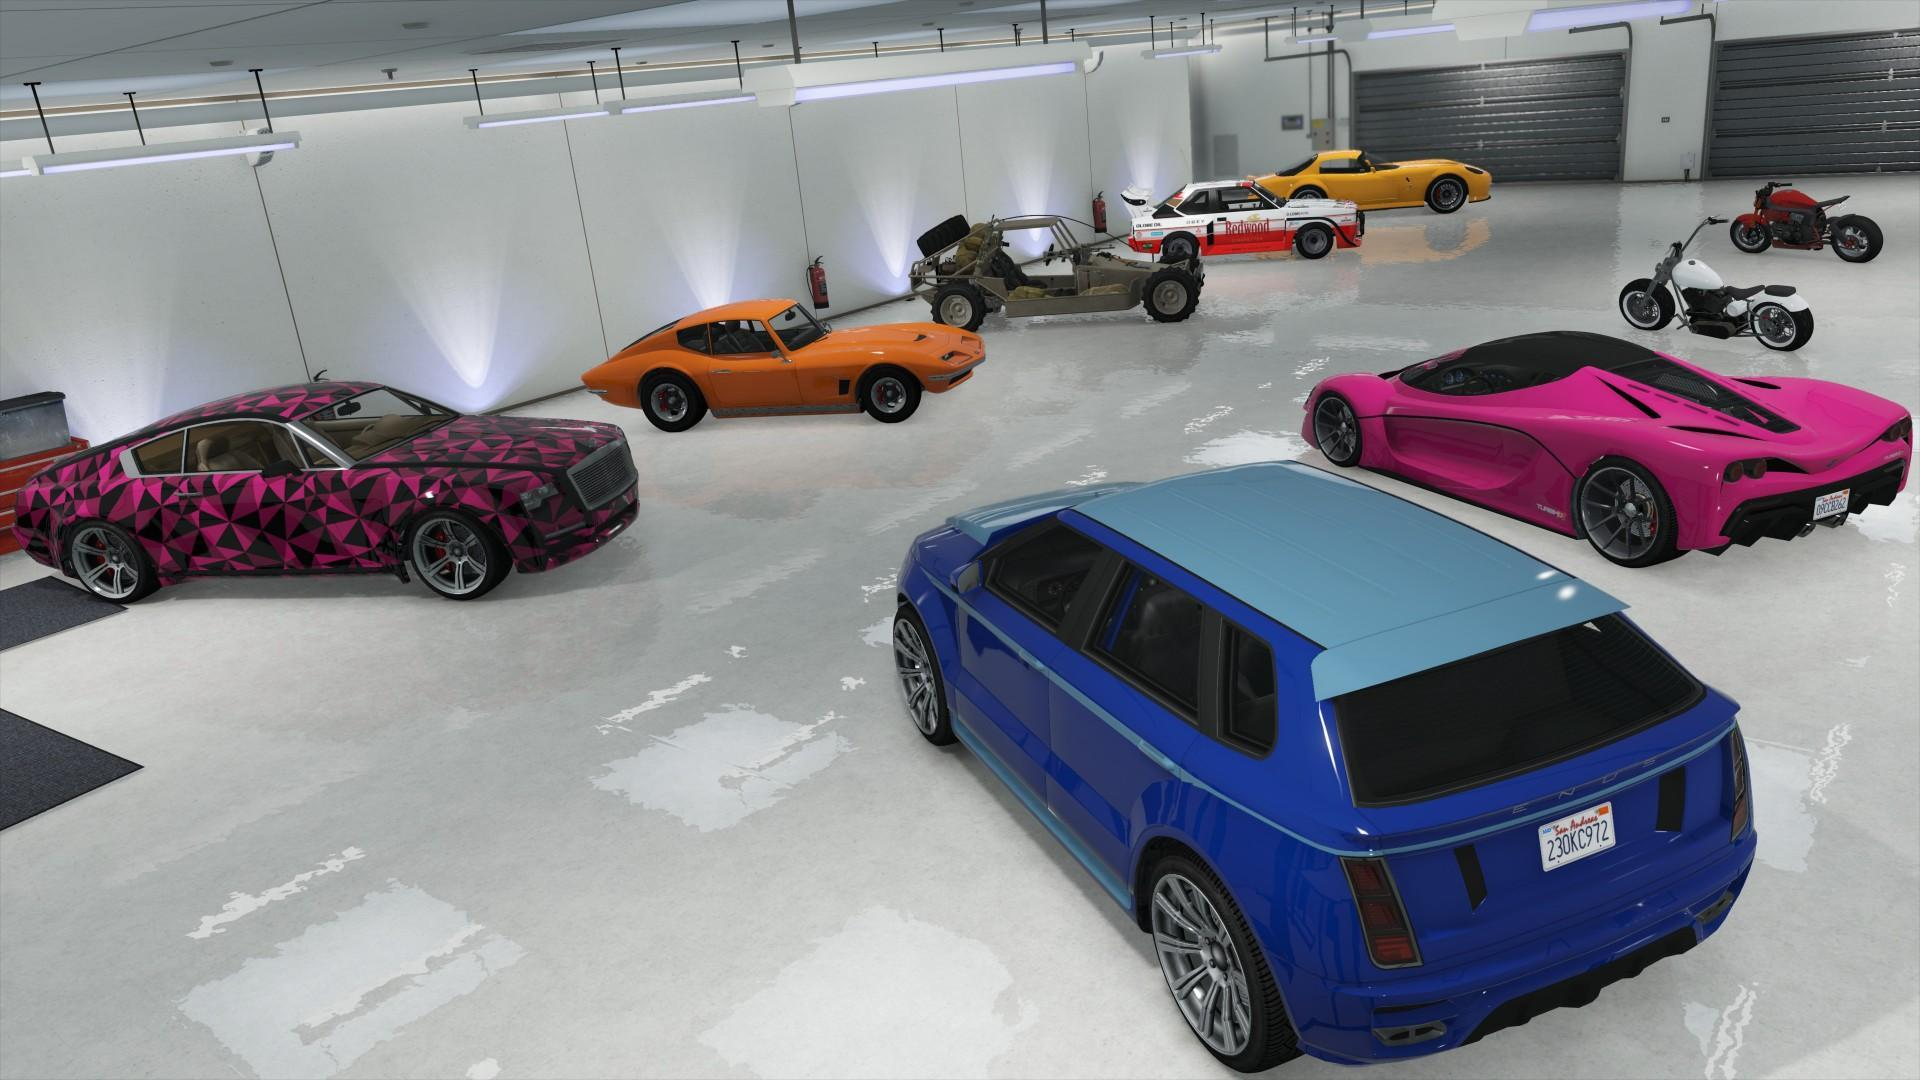 Gtaonline Apartment Highend Garage 1 Gtaonline Apartment Highend Garage 2